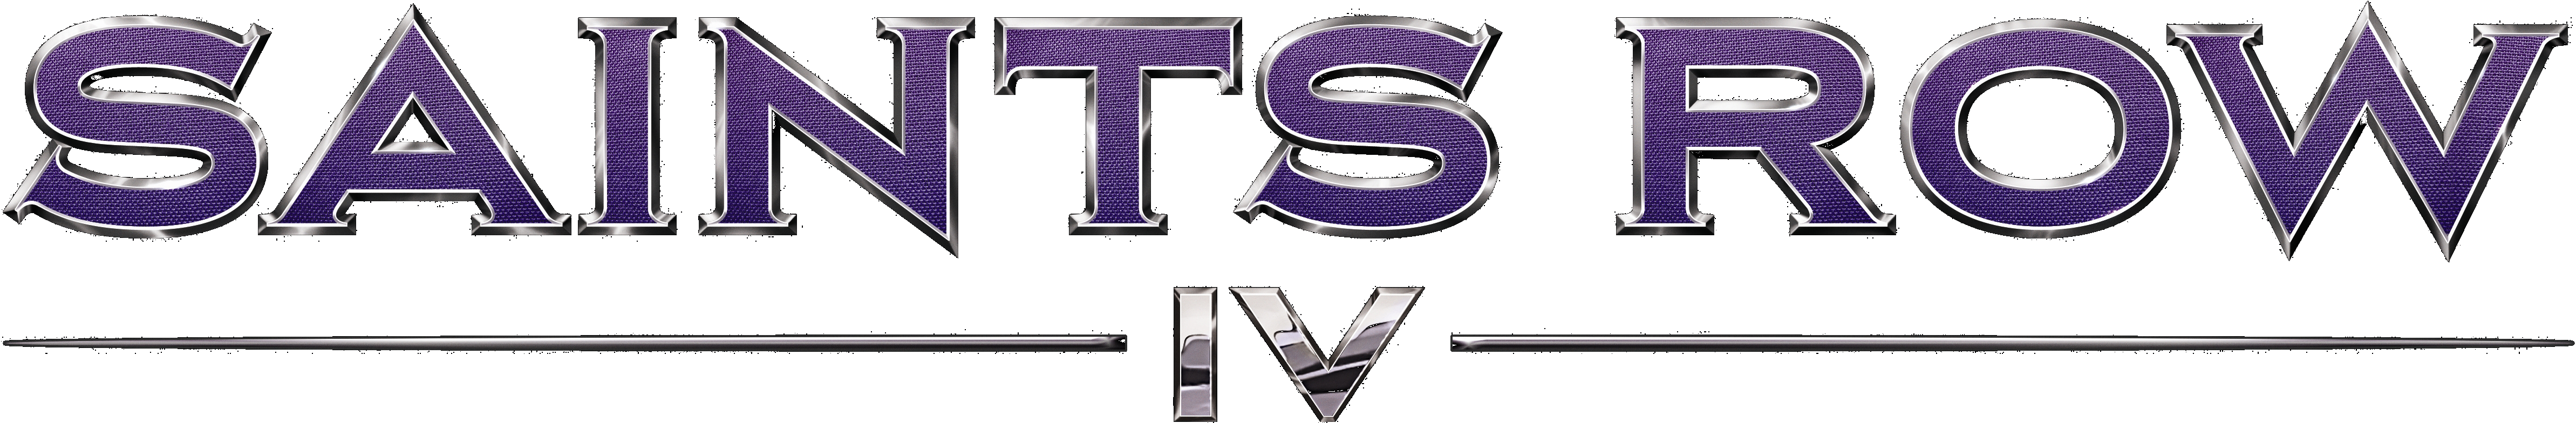 Saints-row-iv jpg pngSaints Row Logo